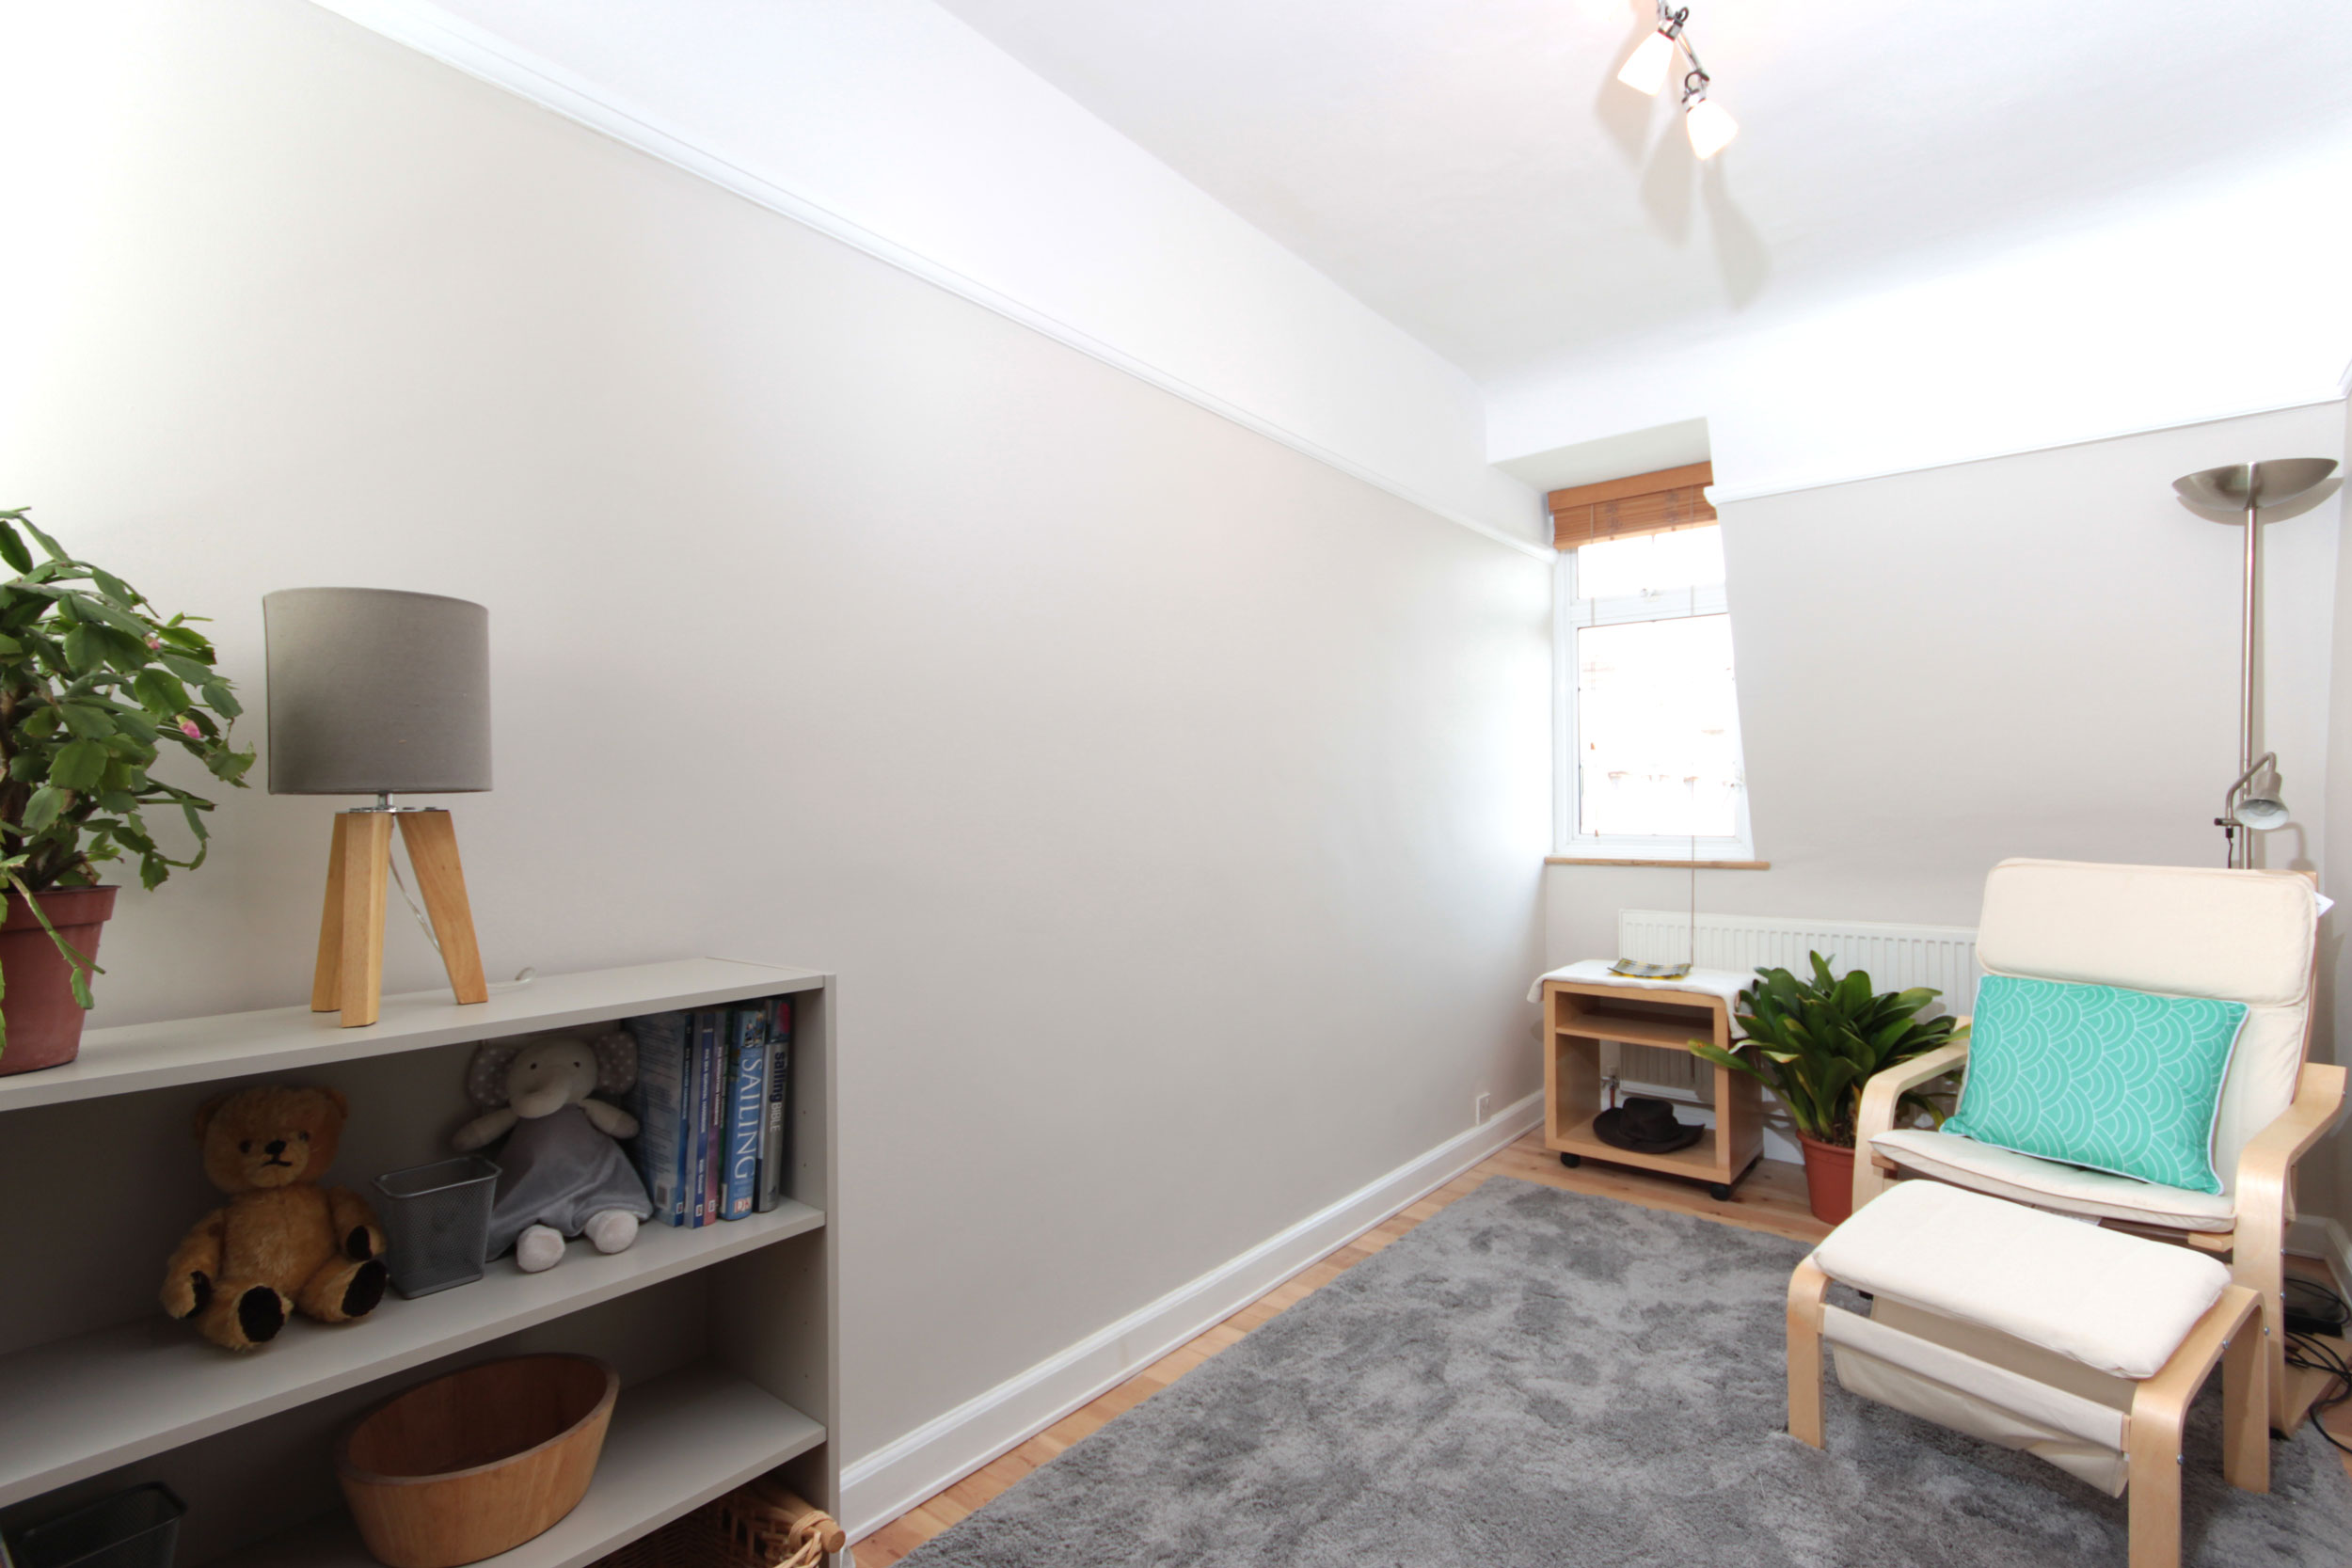 Meters To Feet Squared 3 Bedroom Apartment For Sale Park Hill Court Beeches